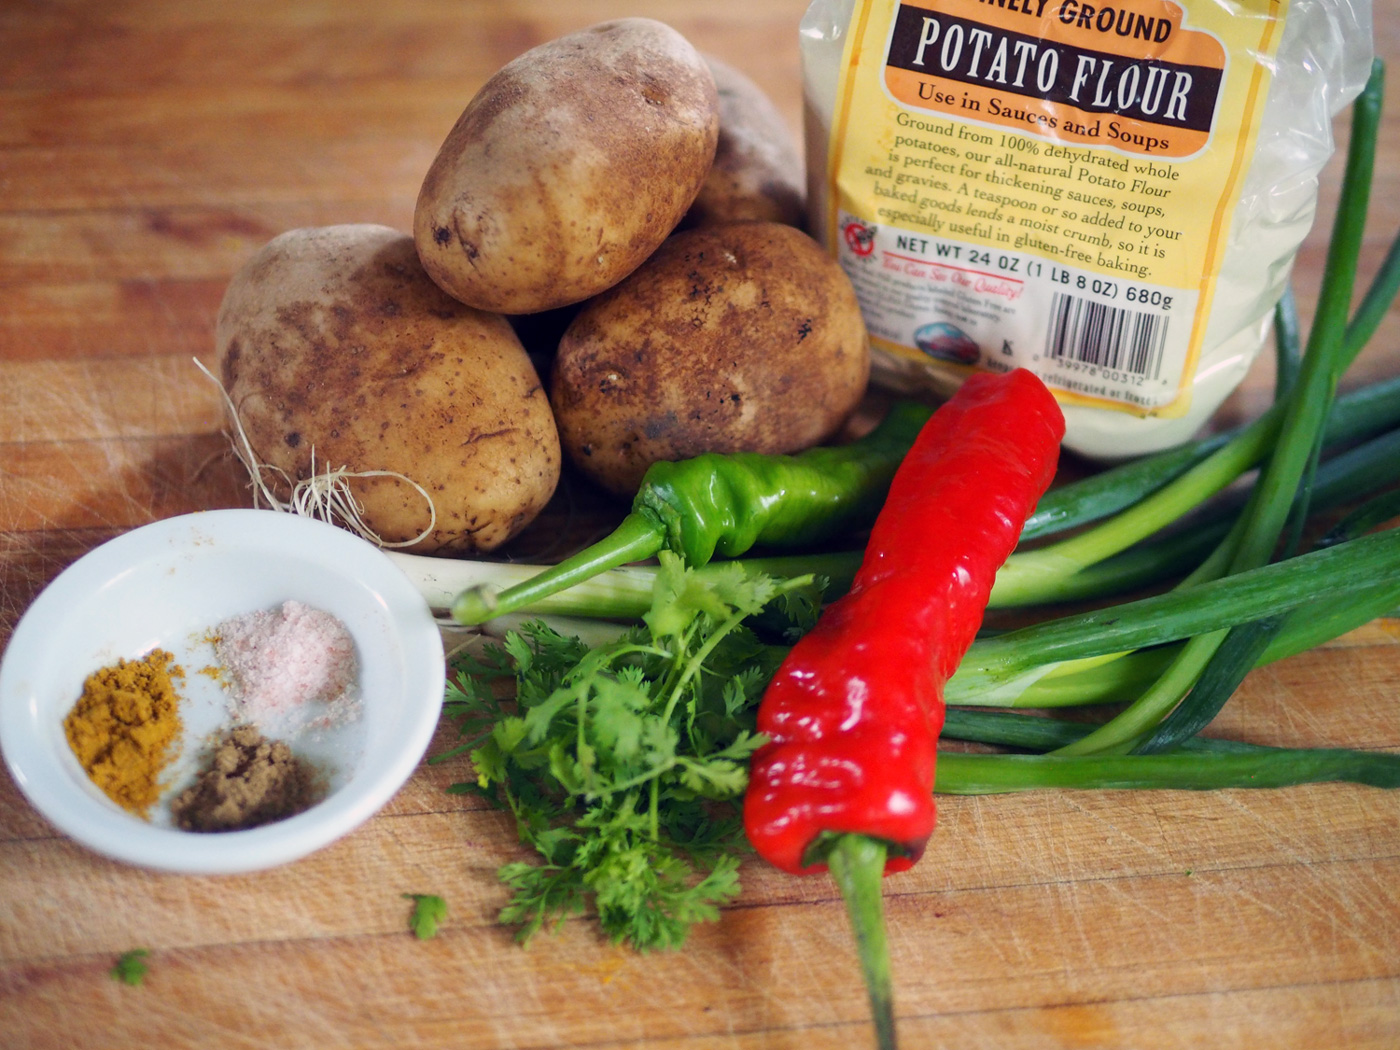 These were my ingredients: Idaho potatoes, potato flour, hot peppers, scallions, cilantro & spices